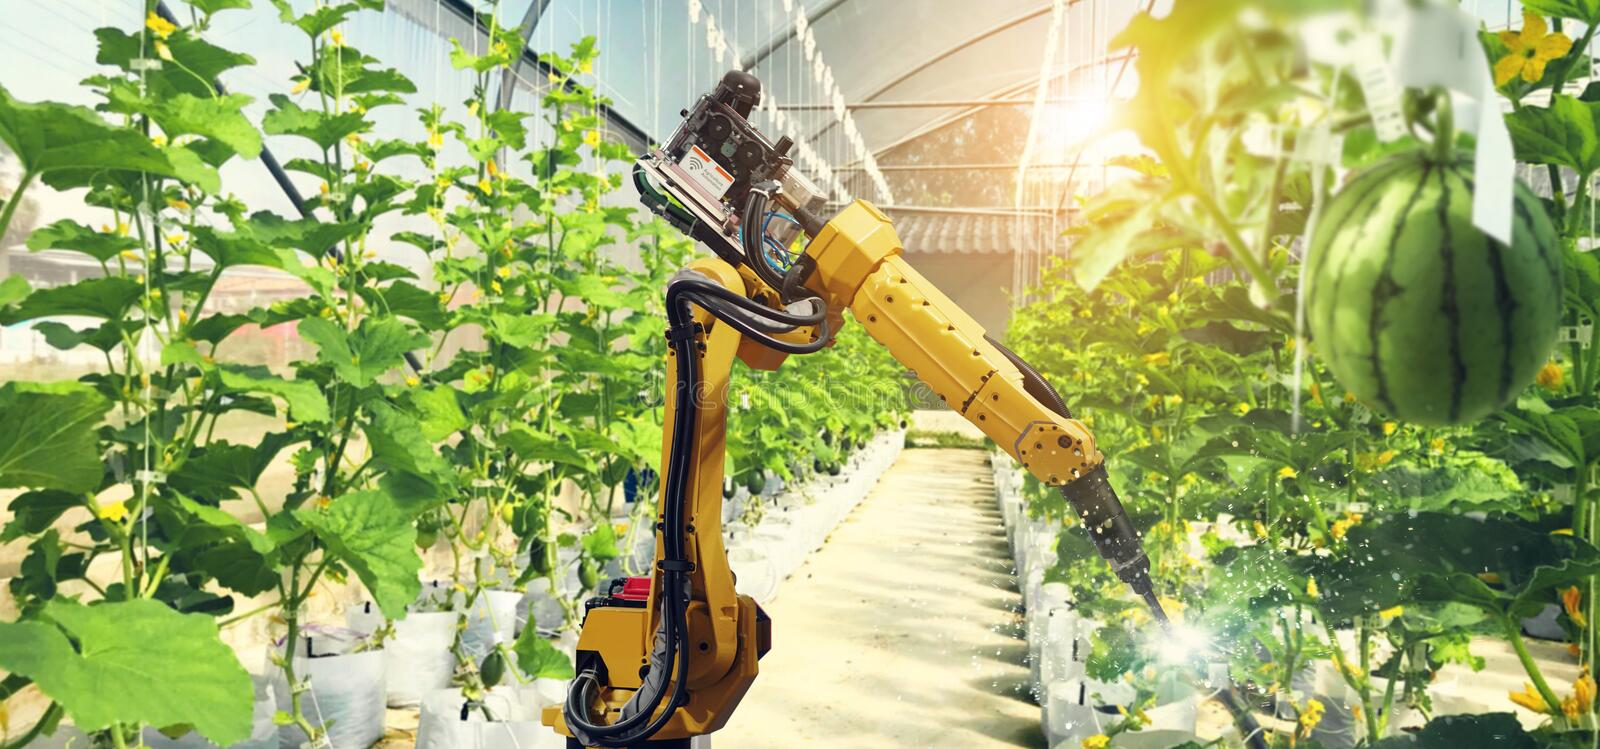 Artificial intelligence. Pollinate of fruits and vegetables stock photo